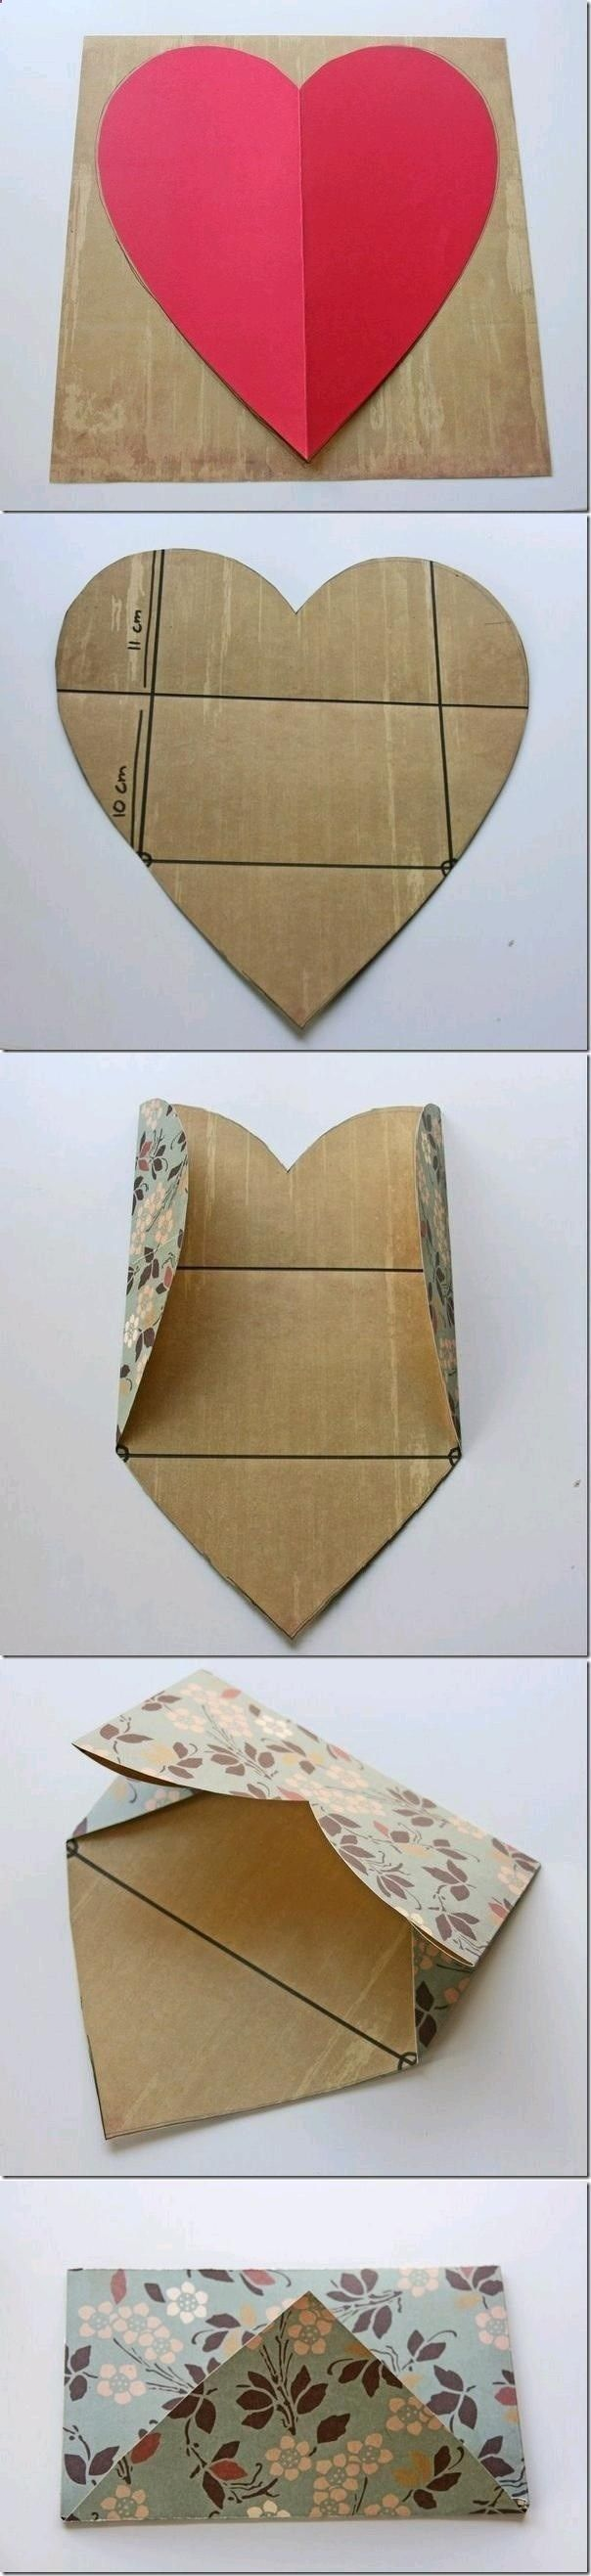 Envelope from a heart